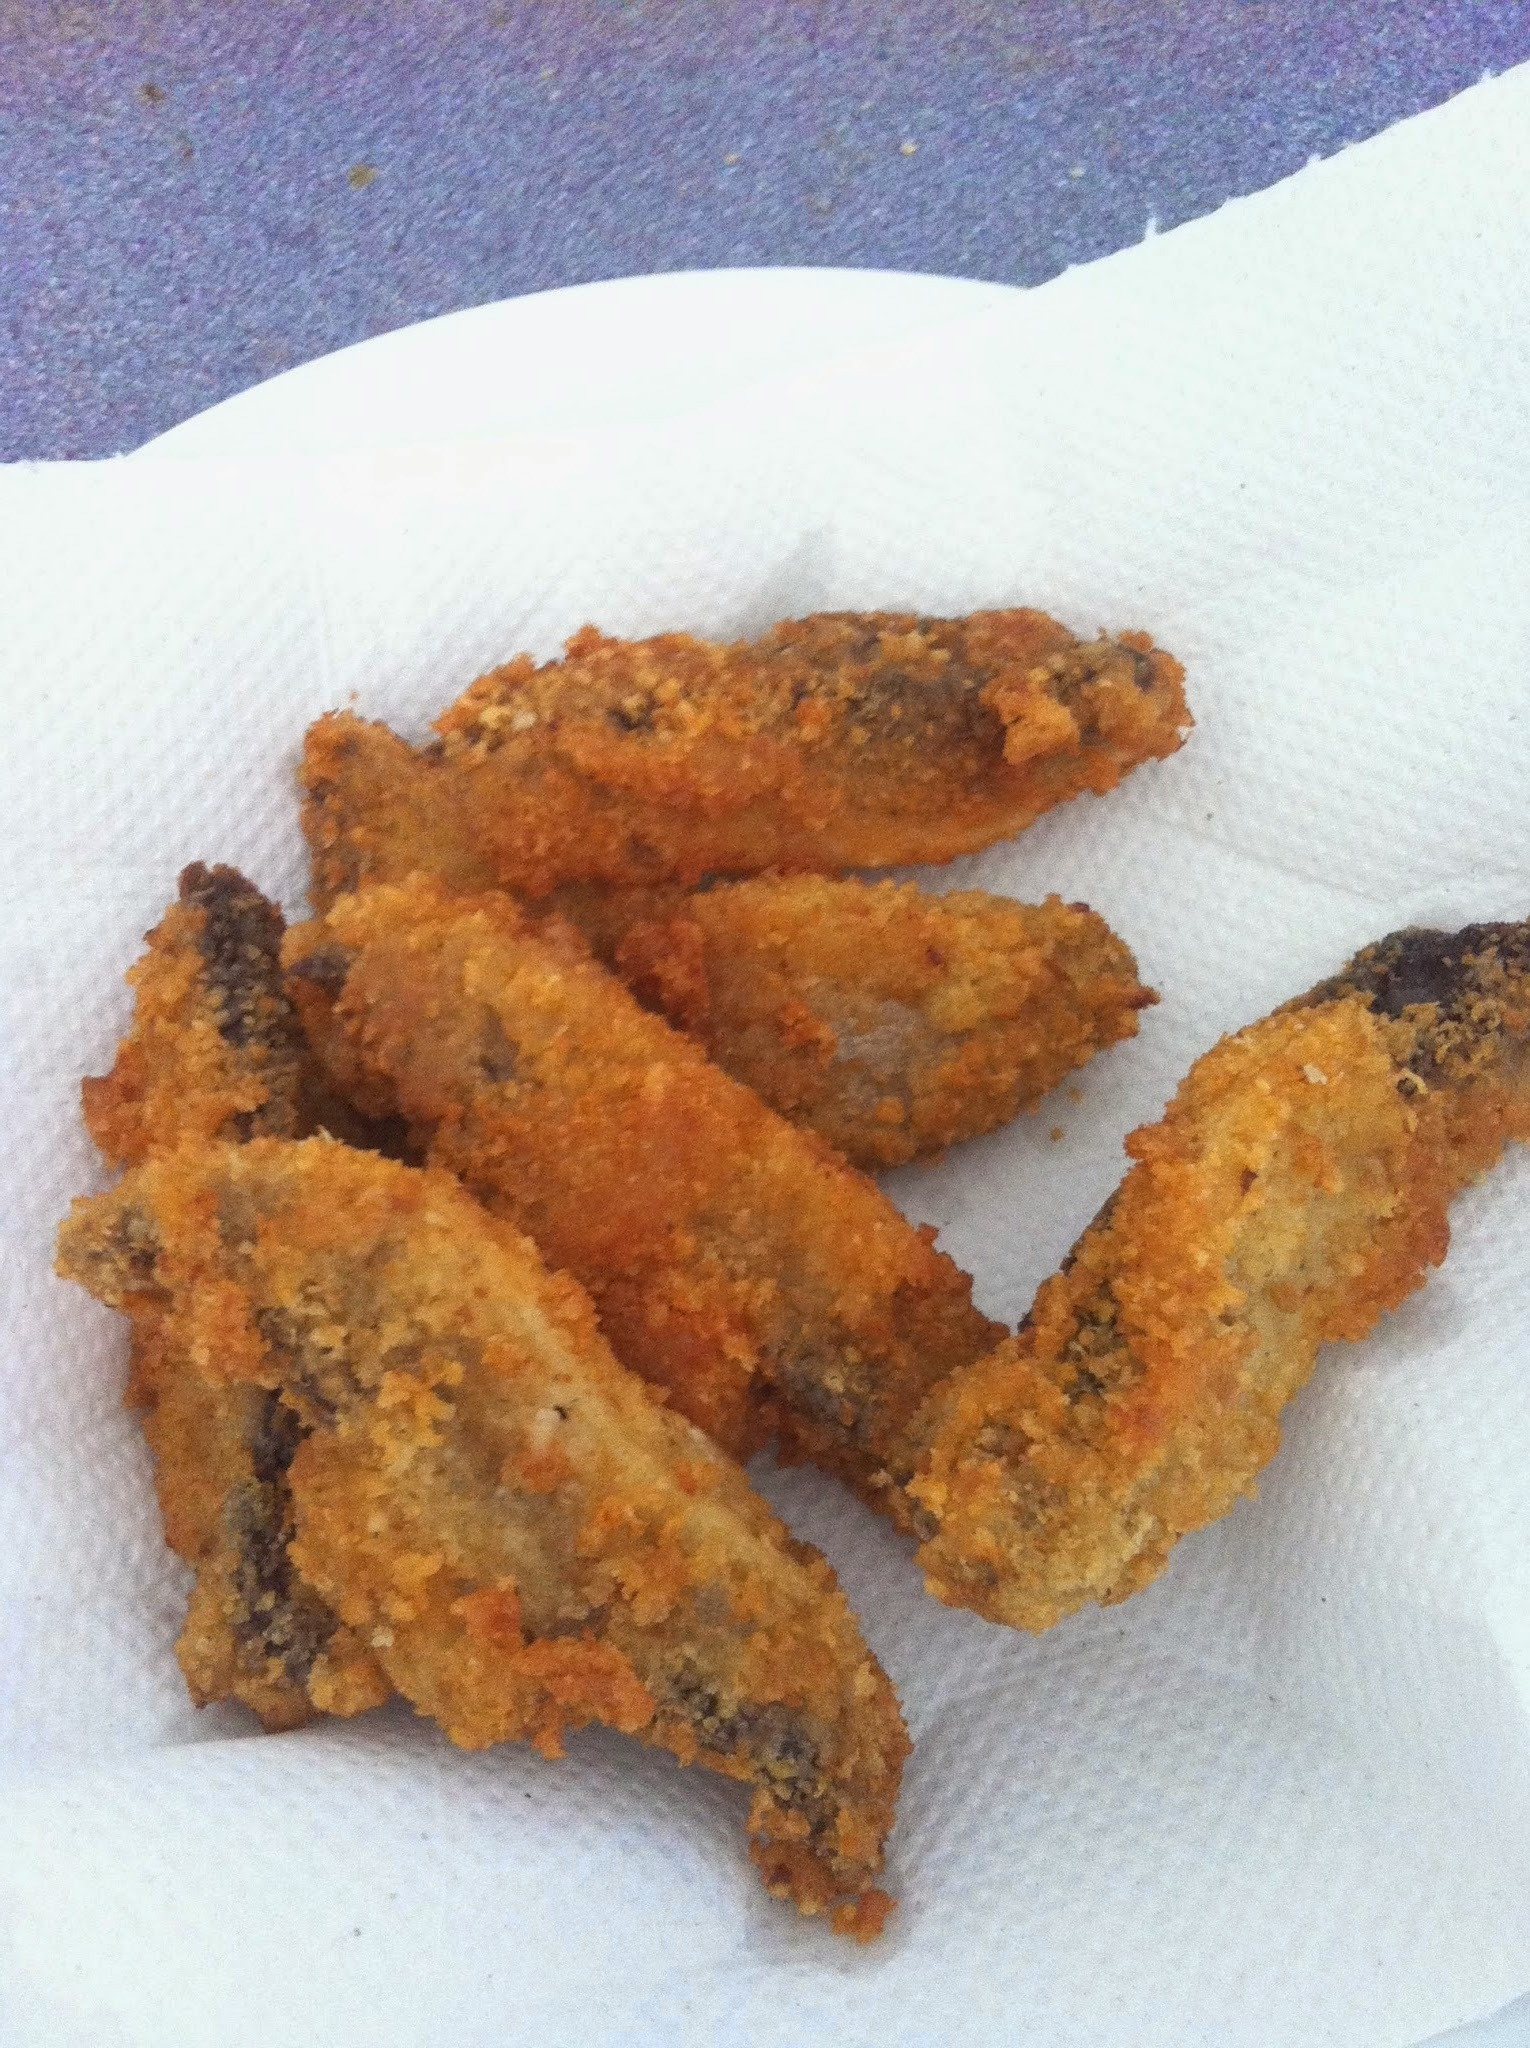 Pecorino or parmesan crusted crispy mushrooms with a creamy garlic dip, a la Jamie Oliver £1.03p per portion